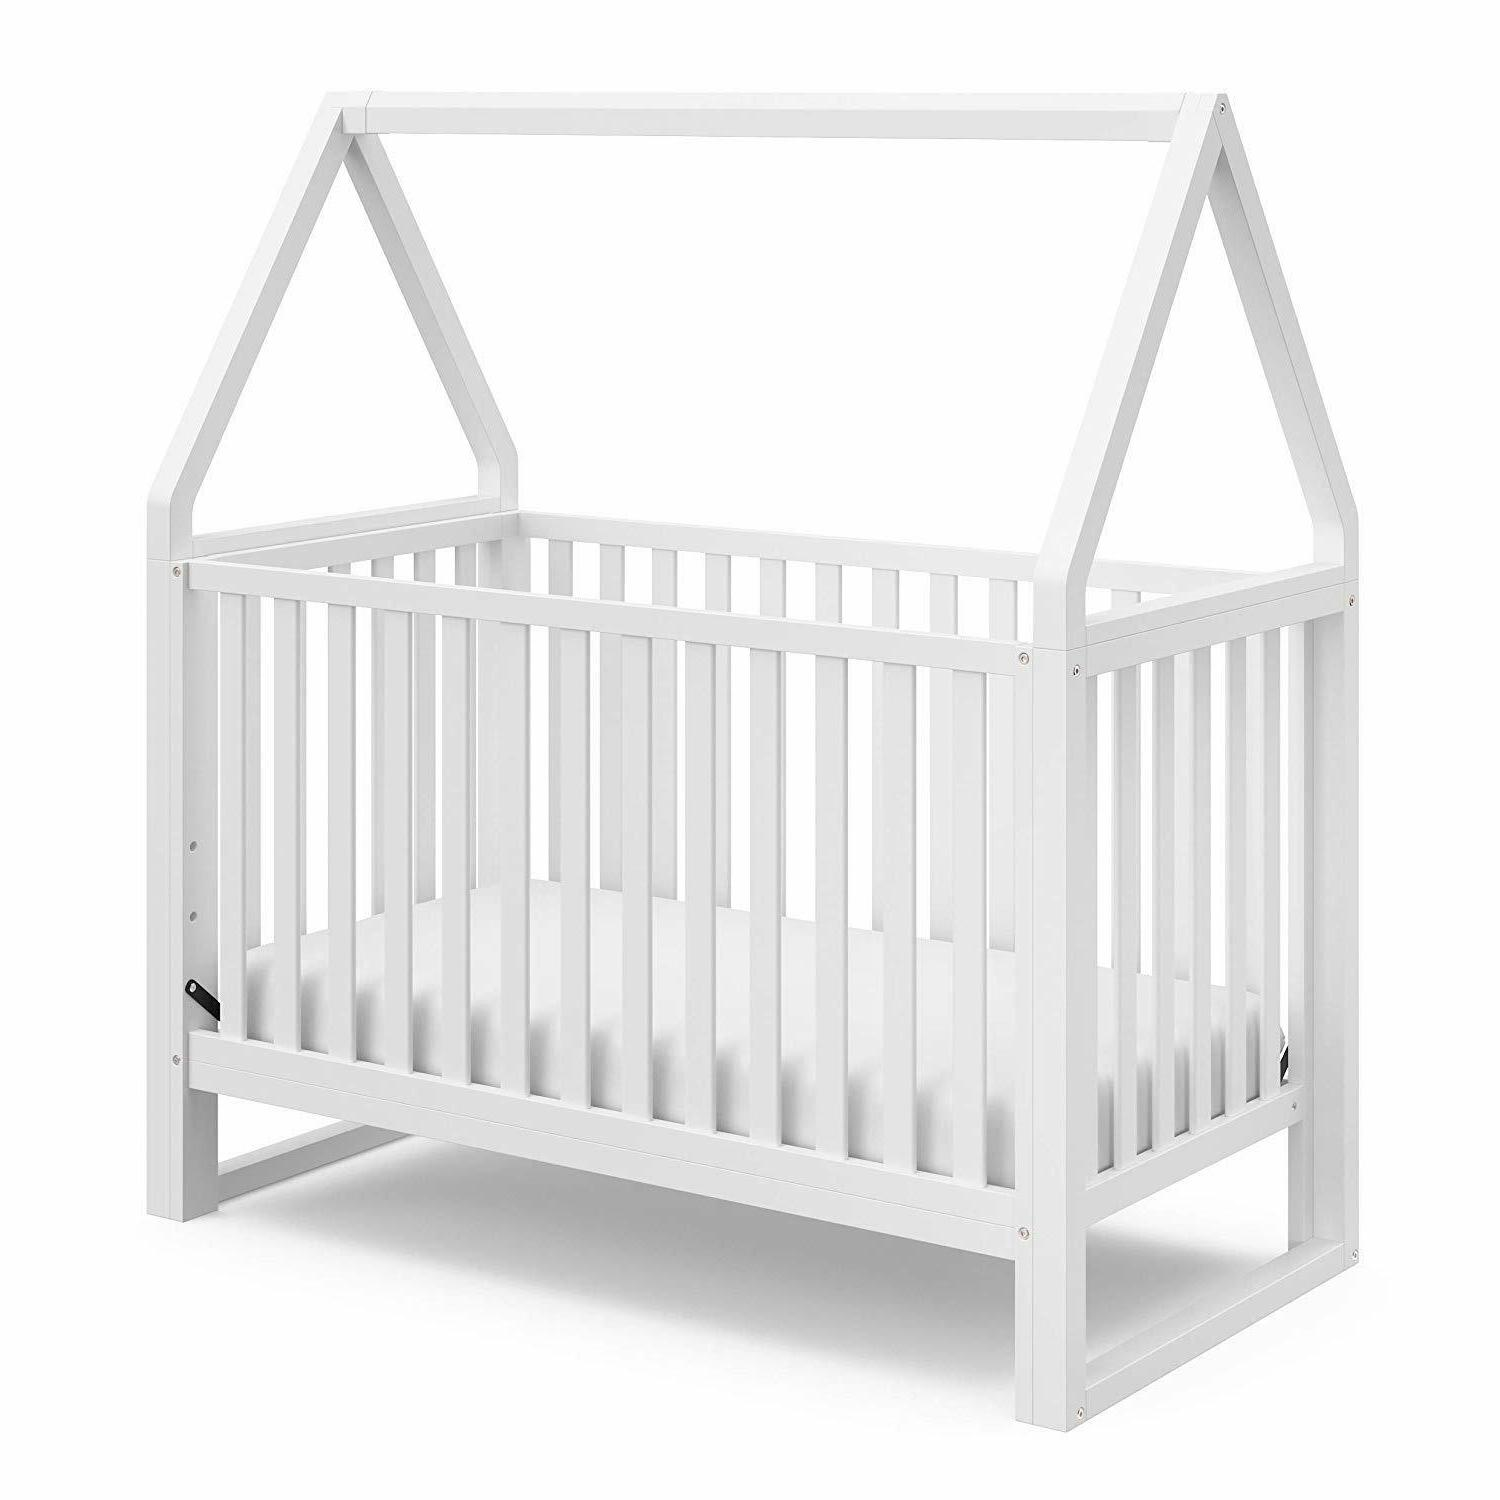 orchard 5 in 1 convertible crib white